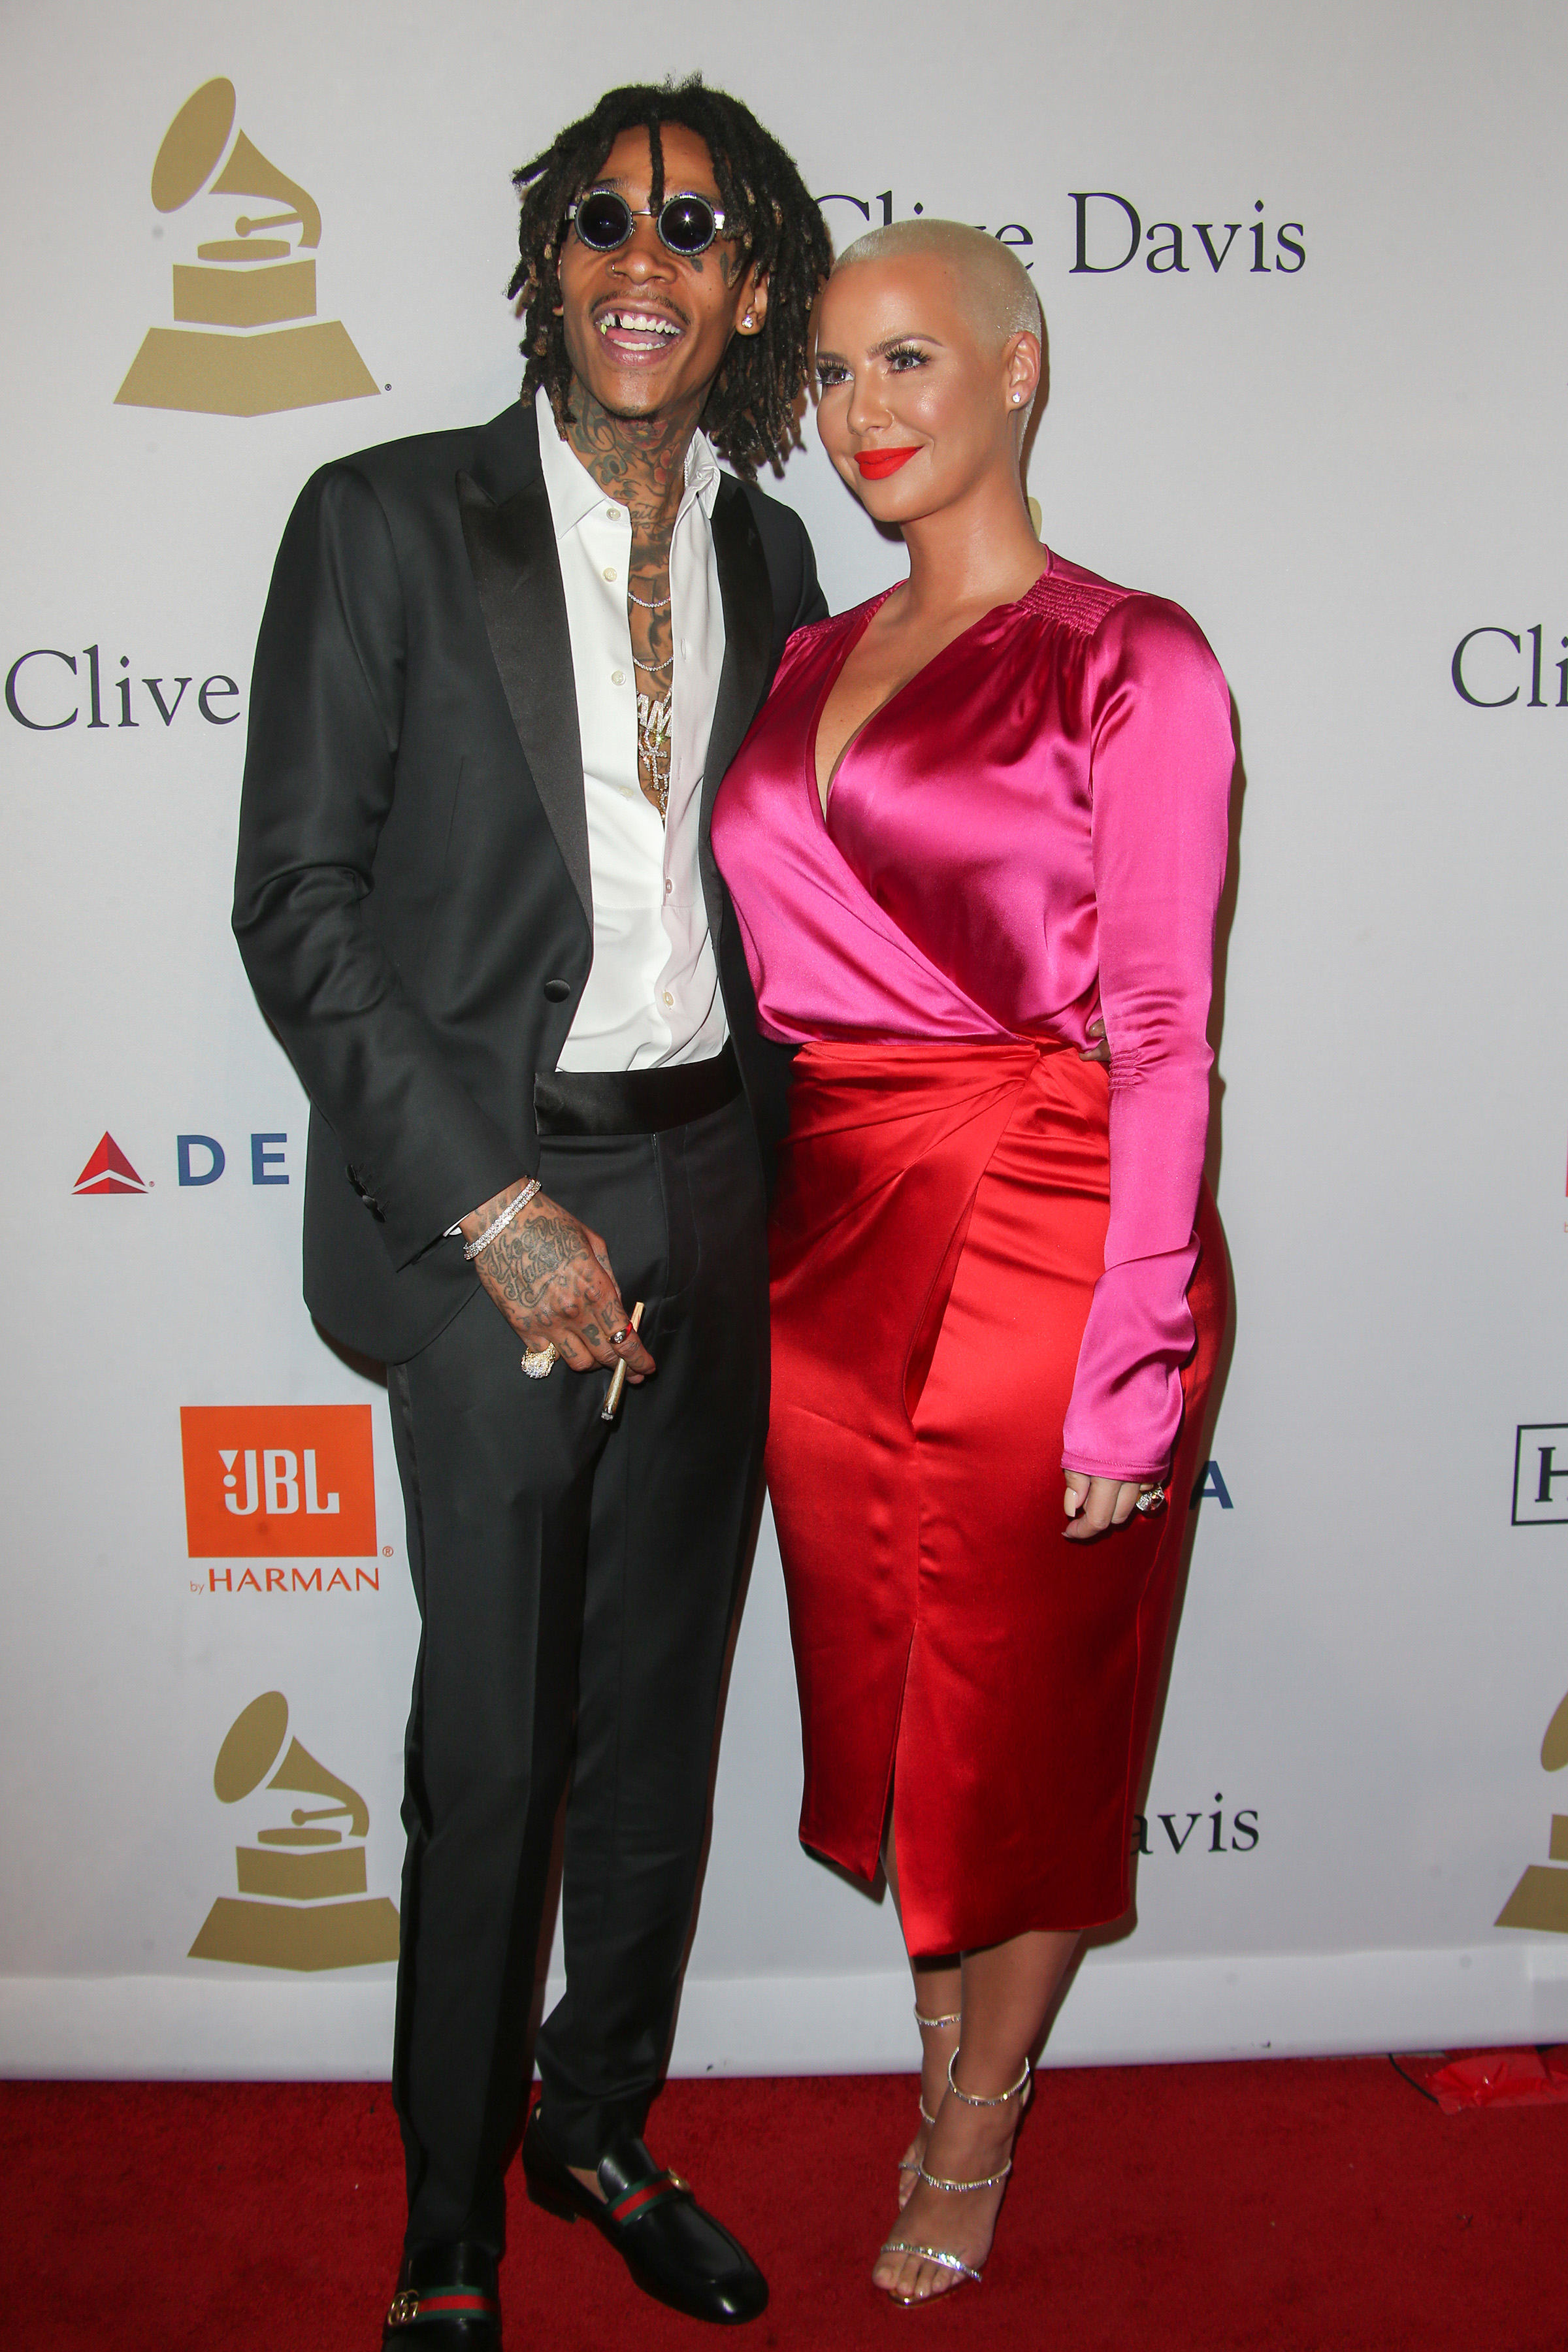 02/11/2017 - Wiz Khalifa, Amber Rose - 59th Annual Grammy Awards - Clive Davis and the Recording Academy's Pre-Grammy Gala and Salute to Industry Icons Honoring Debra Lee - Arrivals - The Beverly Hilton - Los Angeles, CA, USA - Keywords: Vertical, Red Carpet Event, Annual Event, Portrait, Music, Photography, Respect, Person, People, Arts Culture and Entertainment, Attending, Celebrity, Celebrities, , Annual Topix, Bestof, 2017 California Orientation: Portrait Face Count: 1 - False - Photo Credit: PRPhotos.com - Contact (1-866-551-7827) - Portrait Face Count: 1